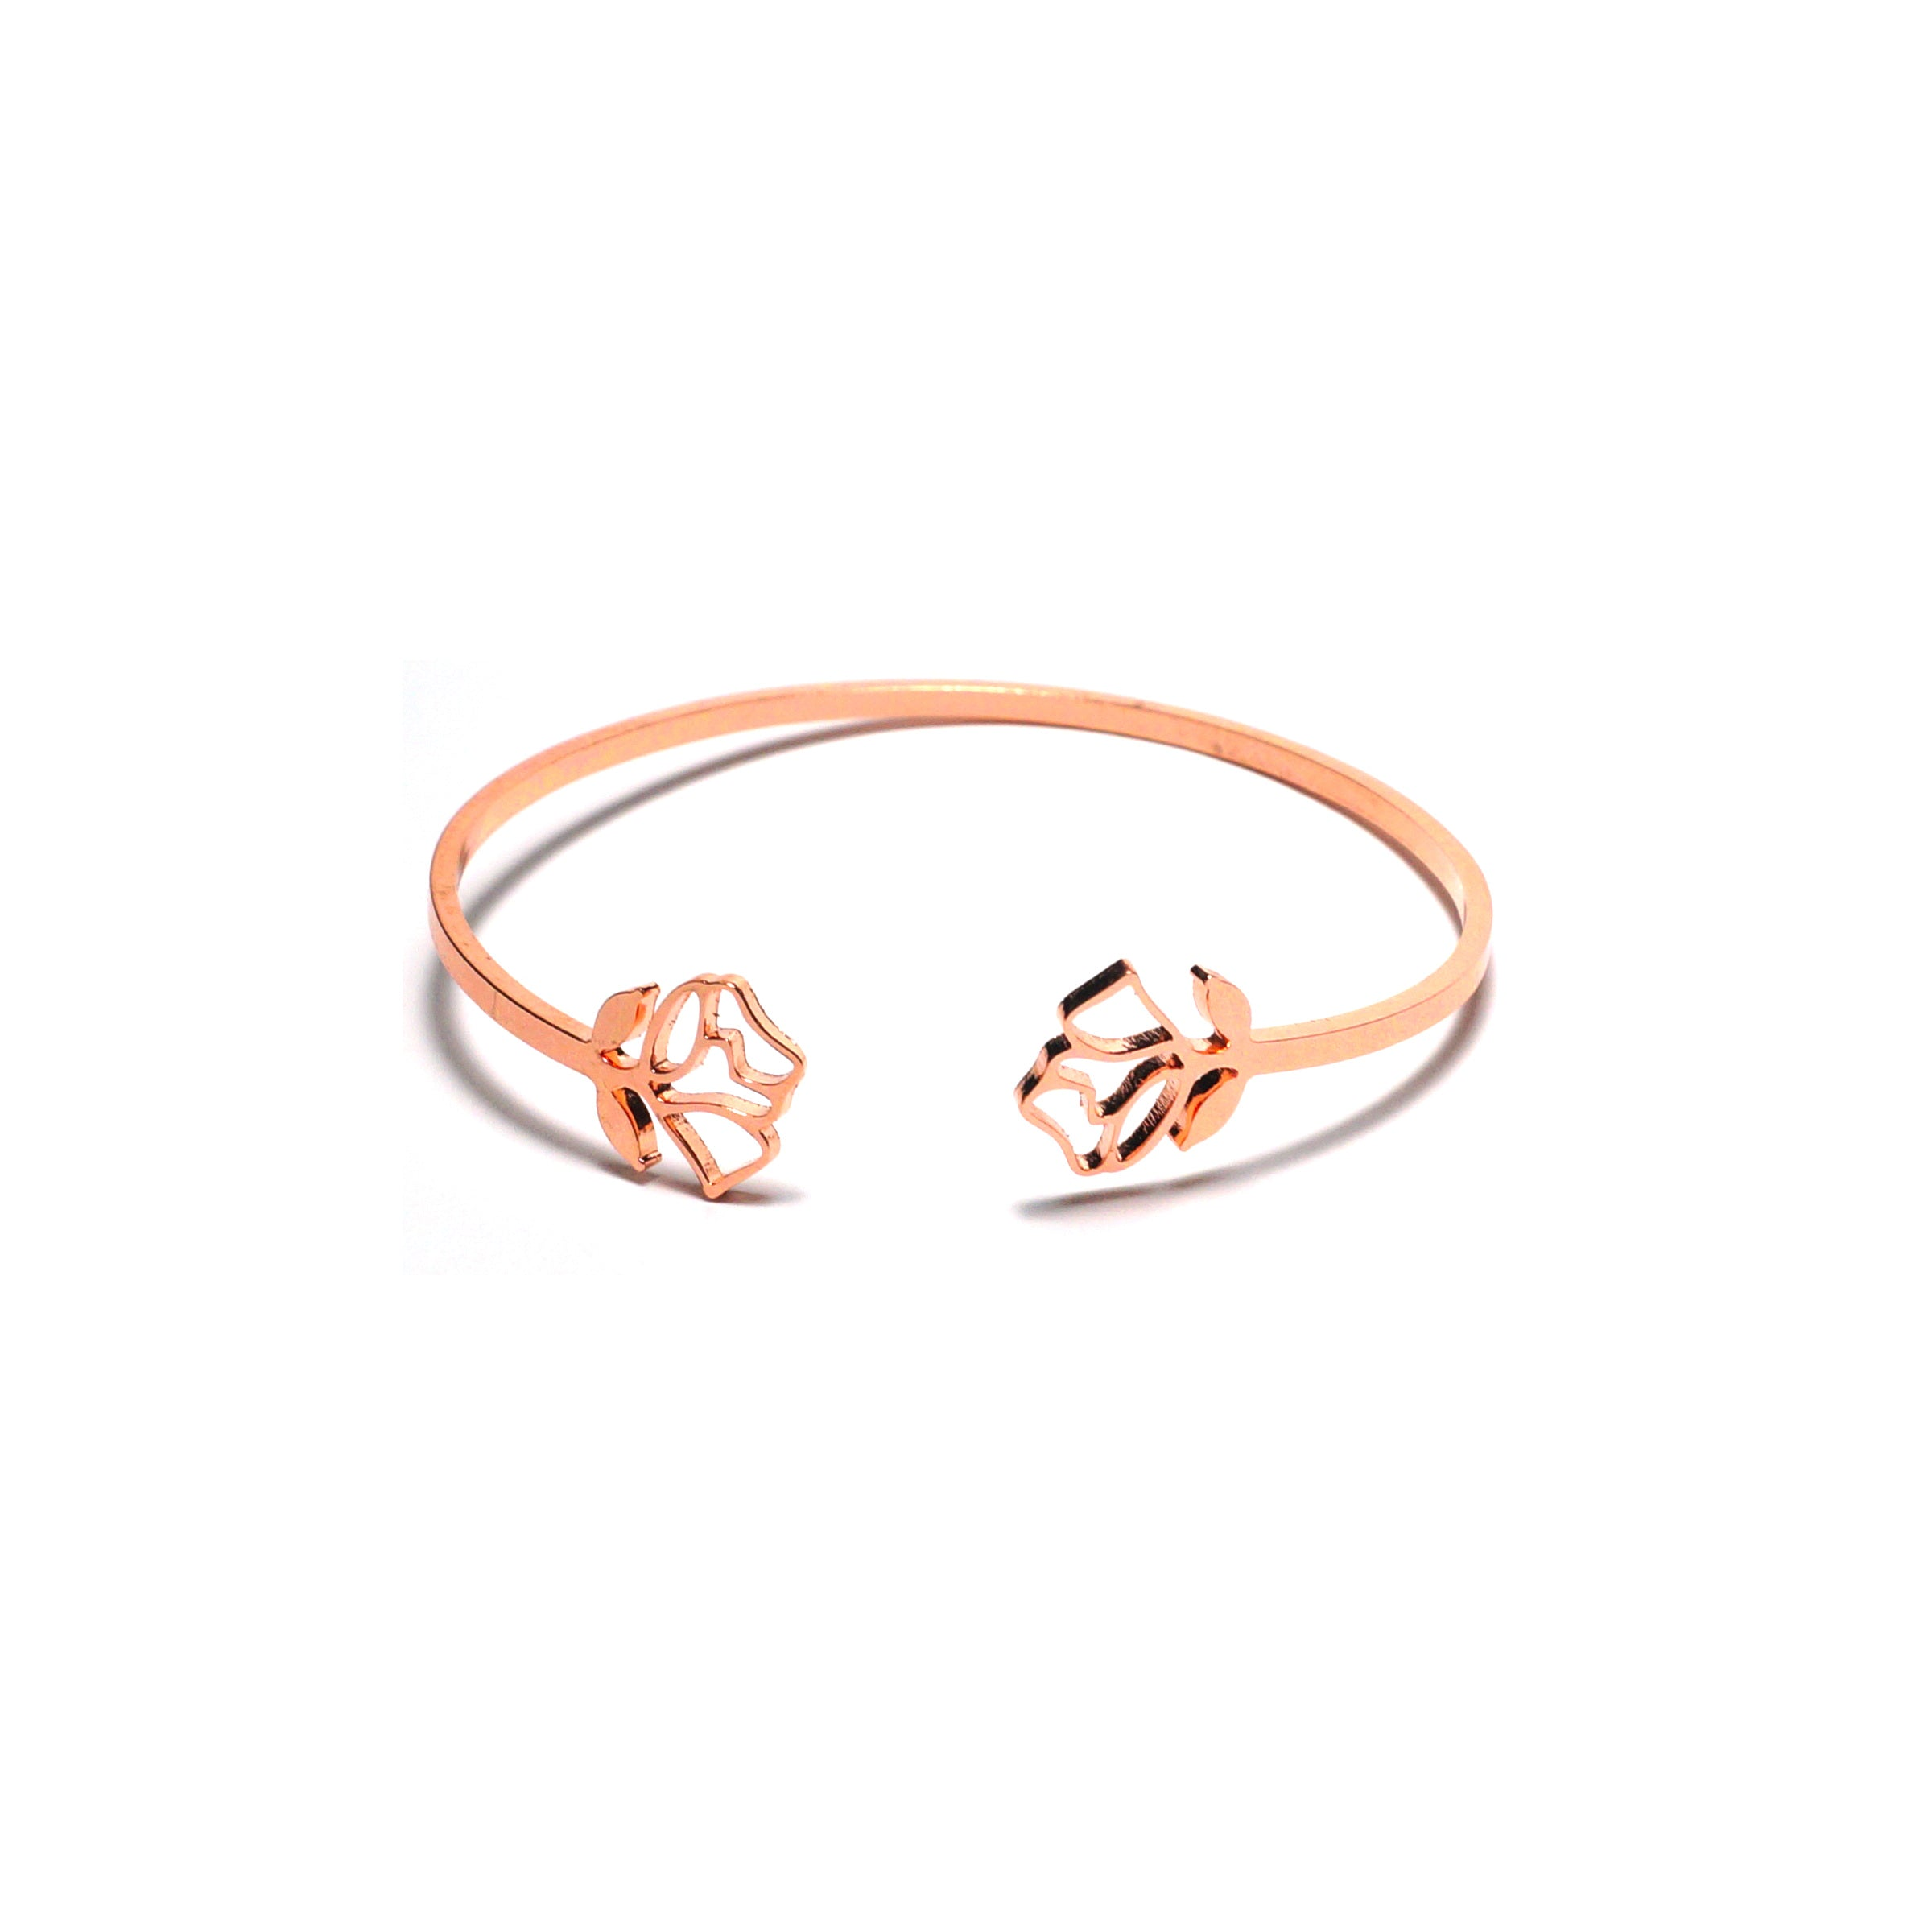 Shop Rose Stainless Steel Bangle-Jarvi